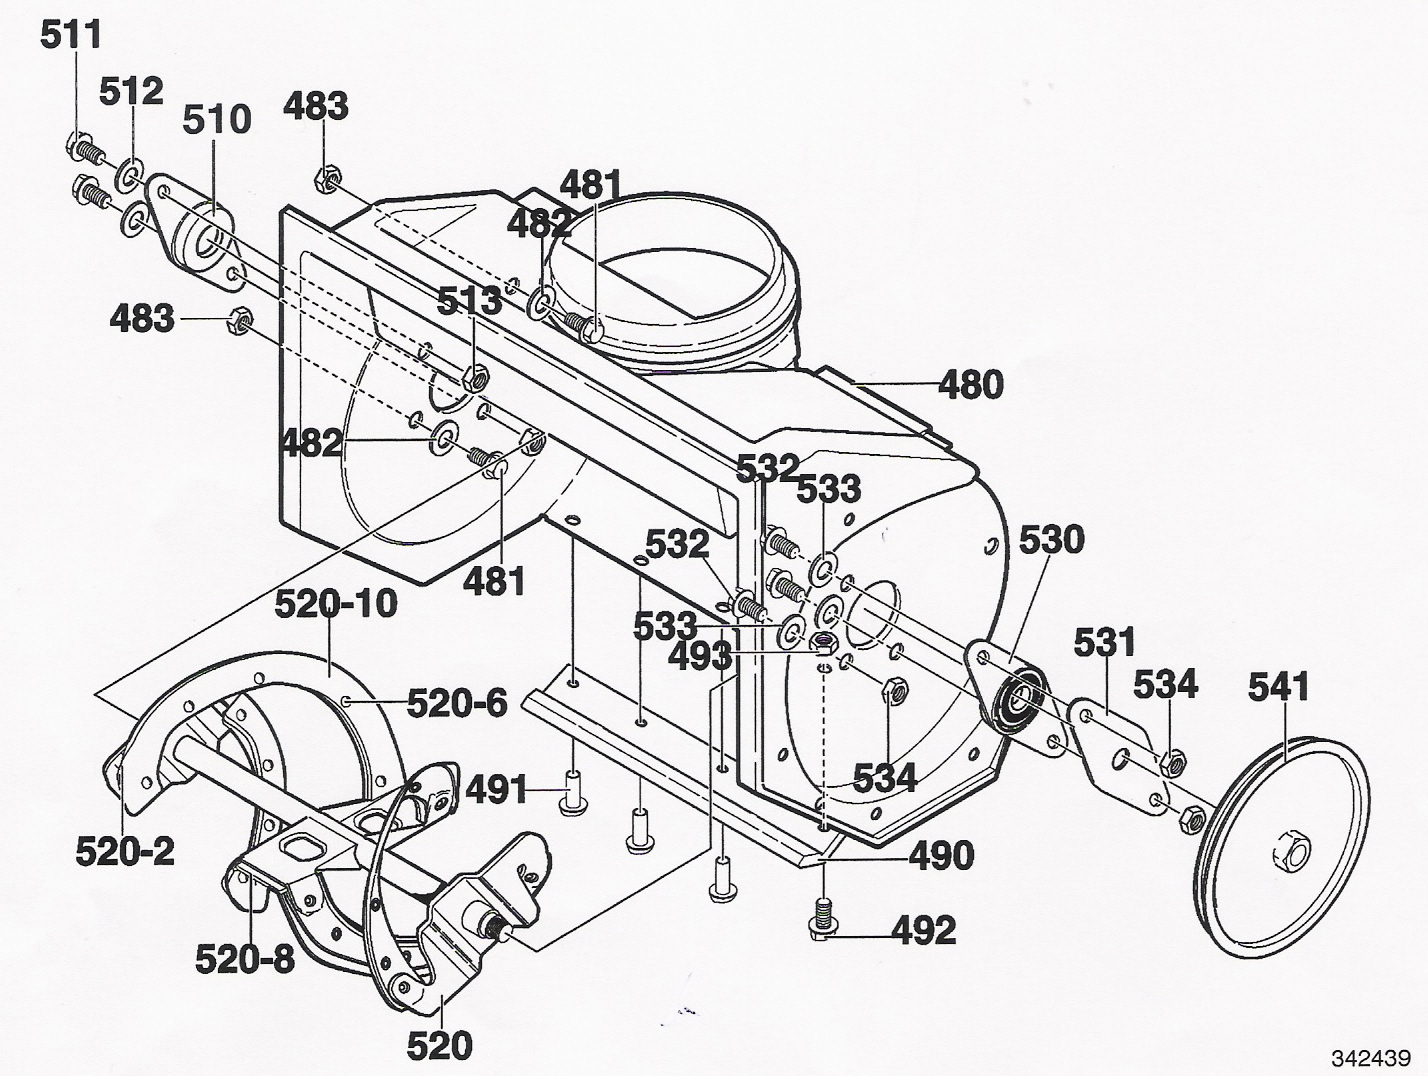 Snow King Snowblower Parts Diagram Mtd Engine Murray Thrower Rh Arkansas Ope Com Manual Blower